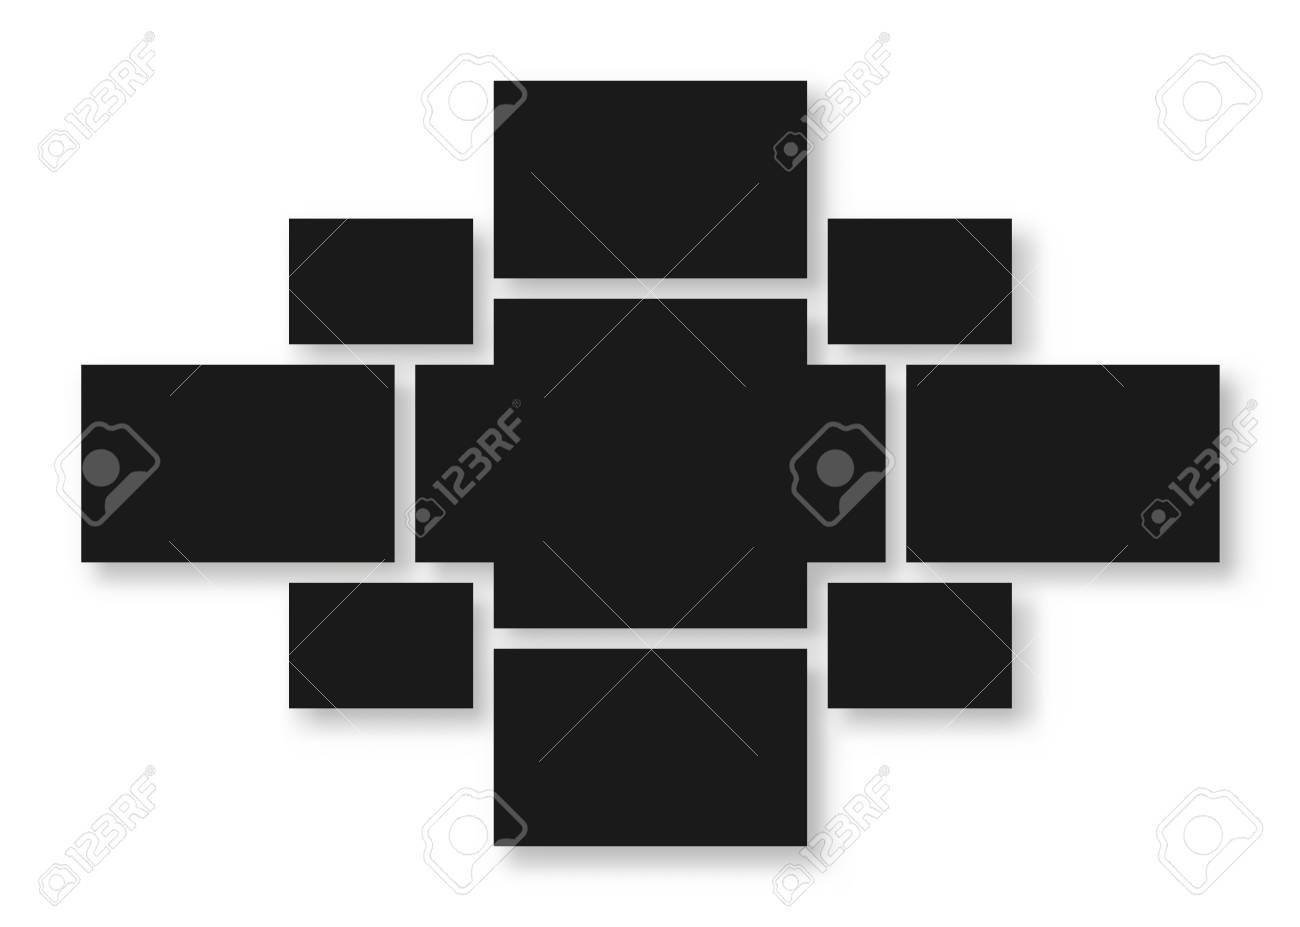 002 Fantastic Free Picture Collage Template Idea  Photo After Effect Maker DownloadFull